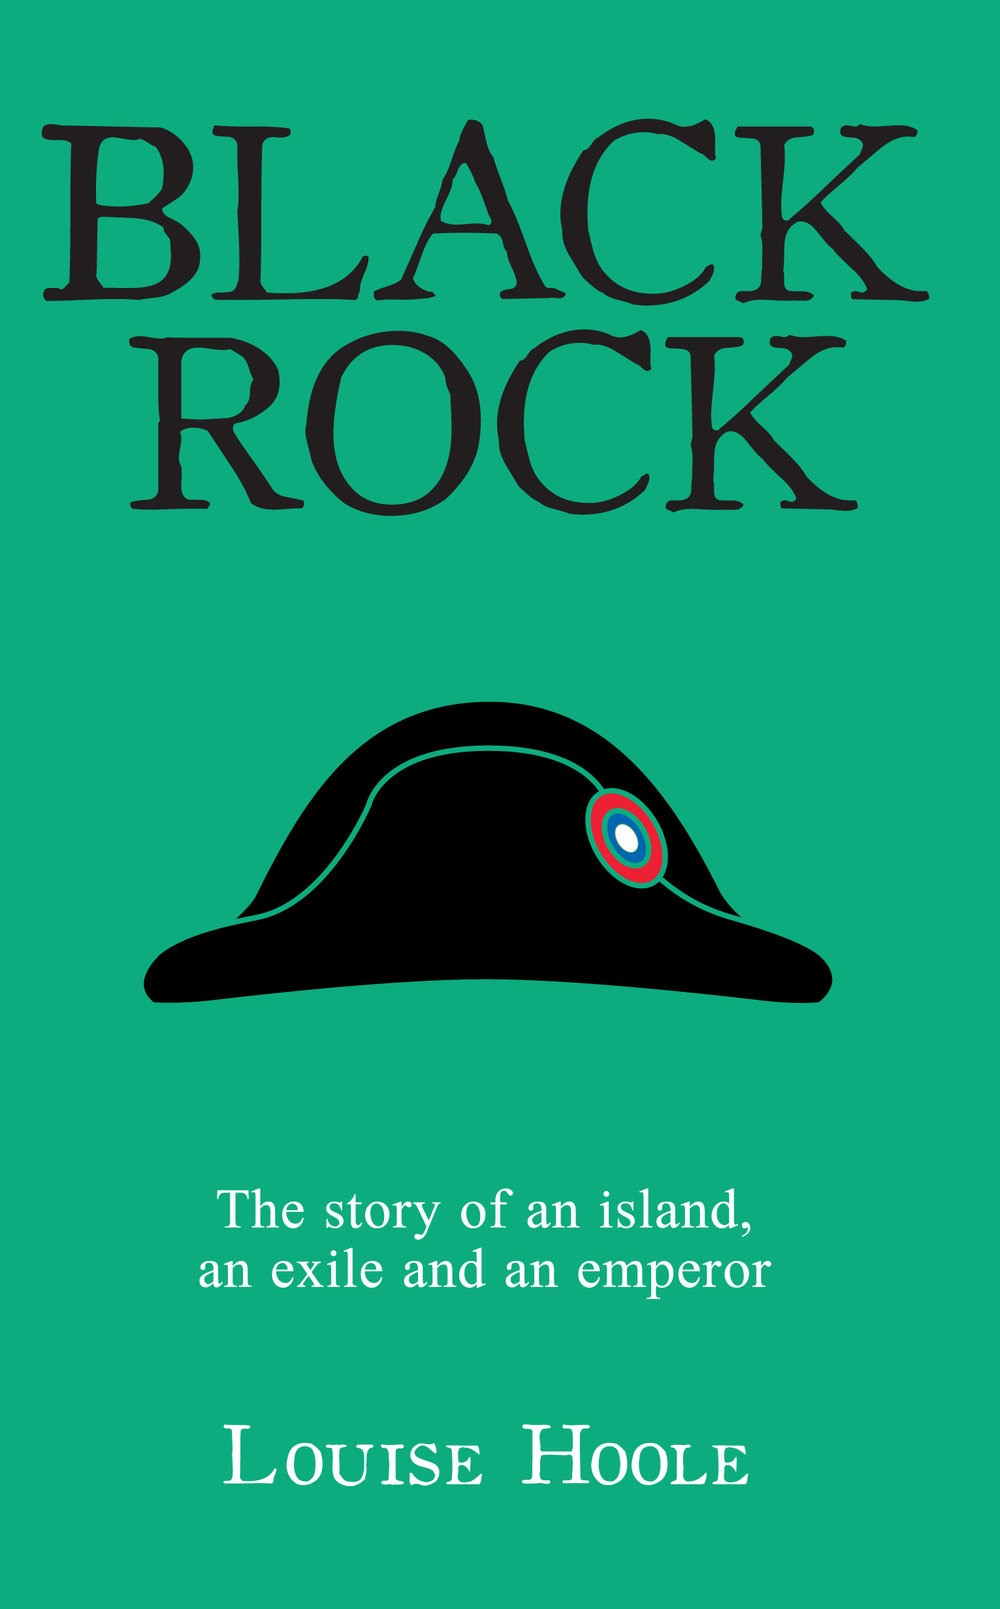 Black Rock cover-1.jpg